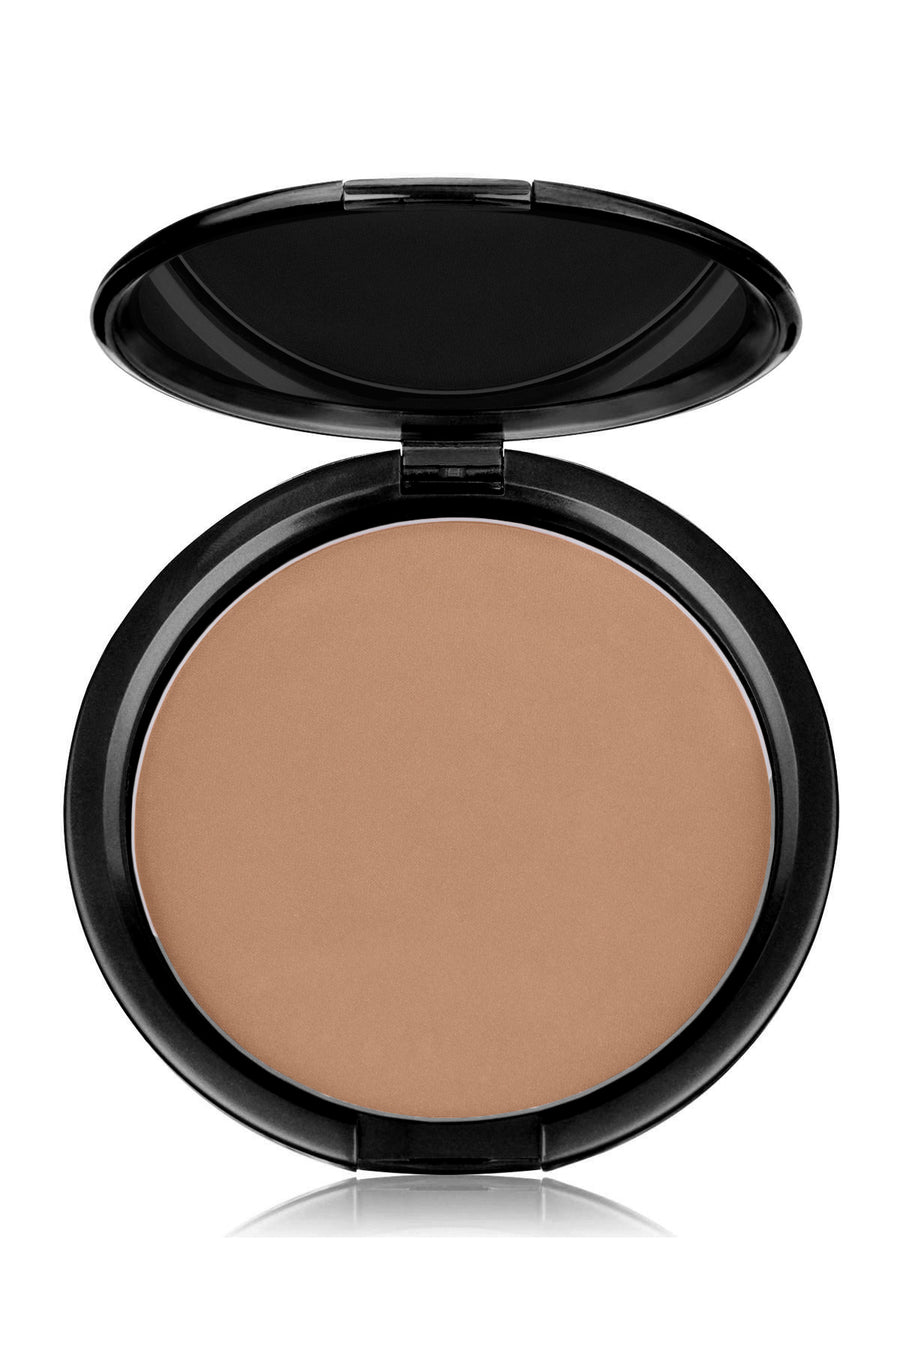 Pressed Foundation - Brown Tone Light - Blend Mineral Cosmetics